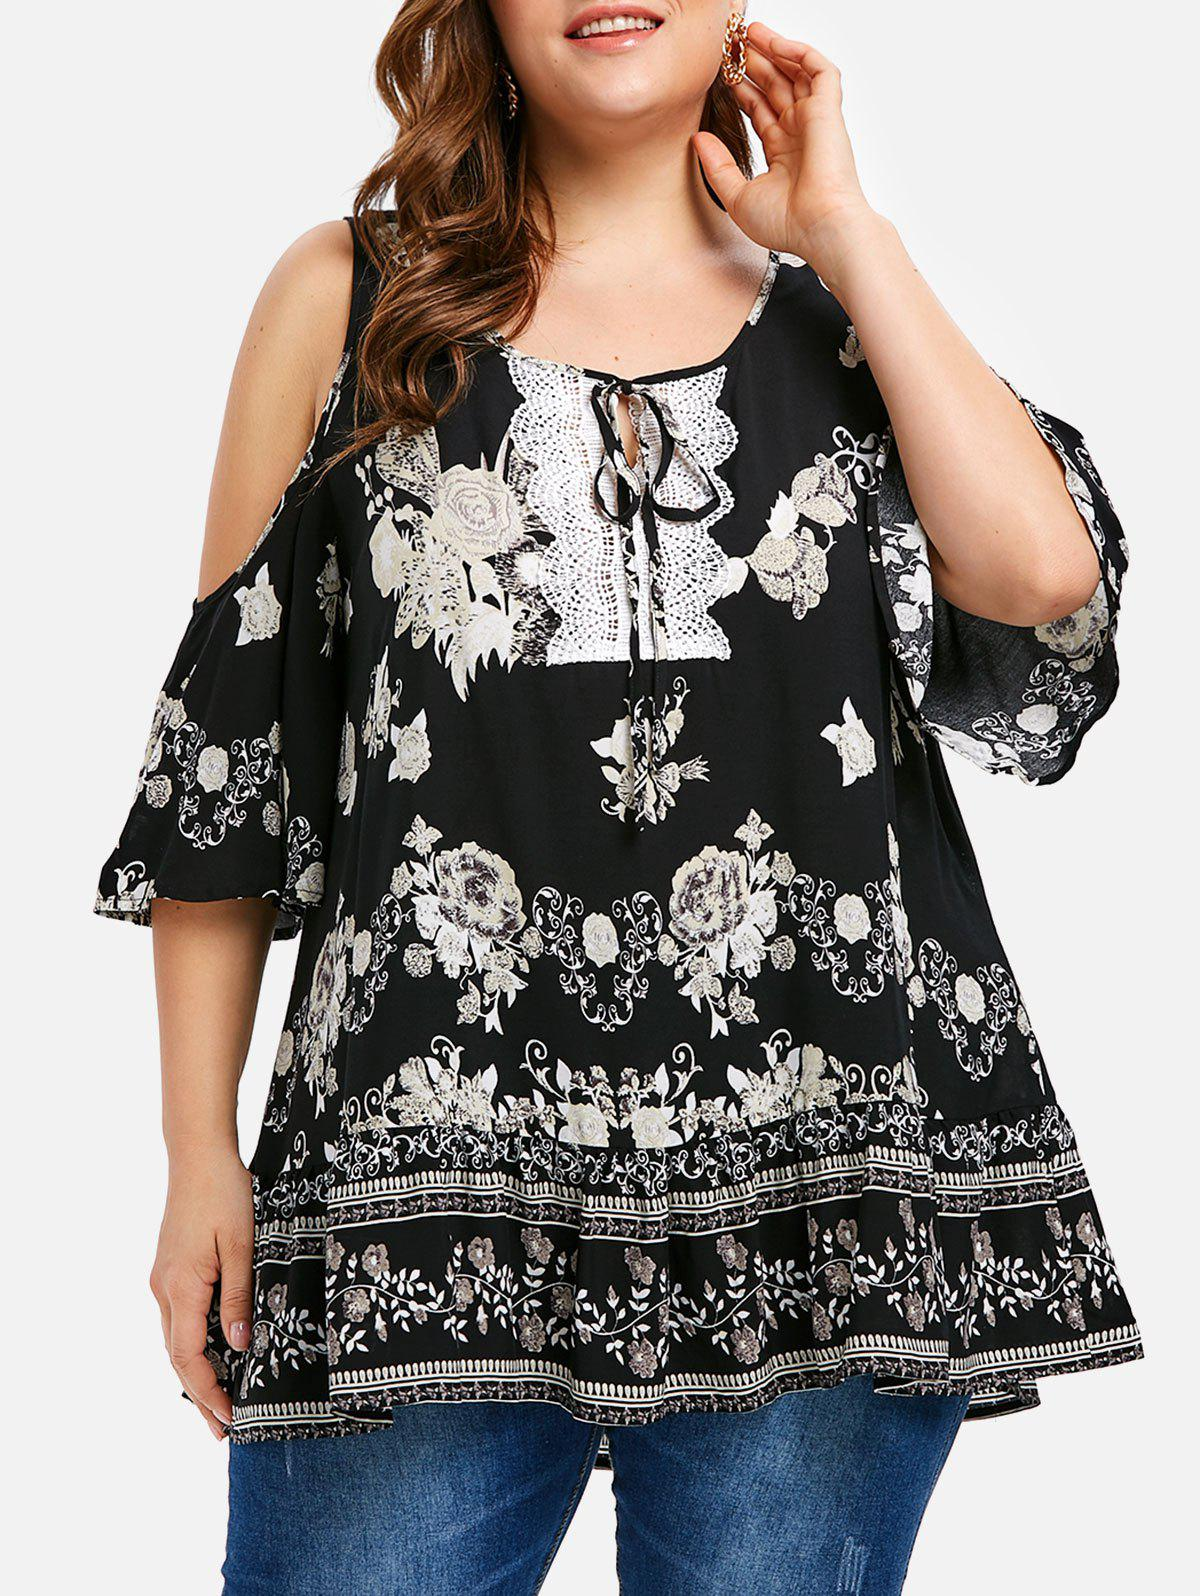 Floral Crochet Panel Plus Size Tunic Top - BLACK 3X